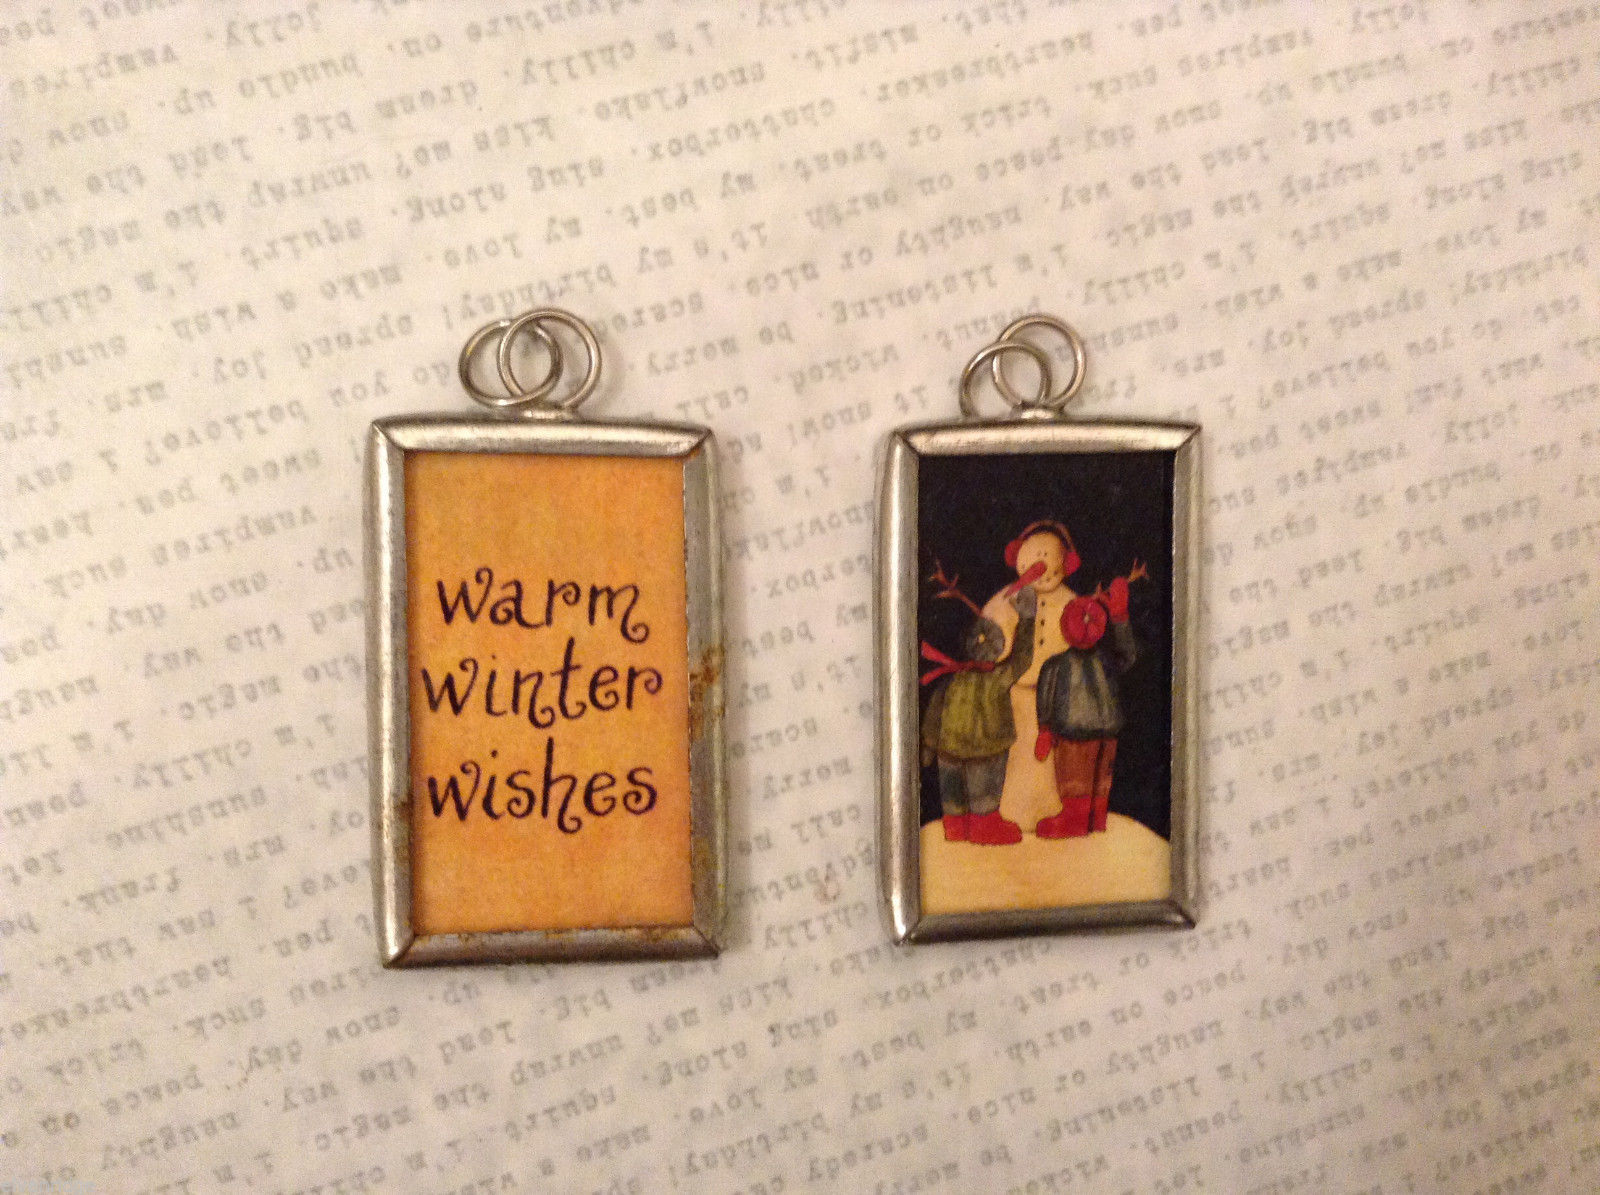 2 sided charm tag in metal frame vintage style - Warm winter wish/Kids w.snowman